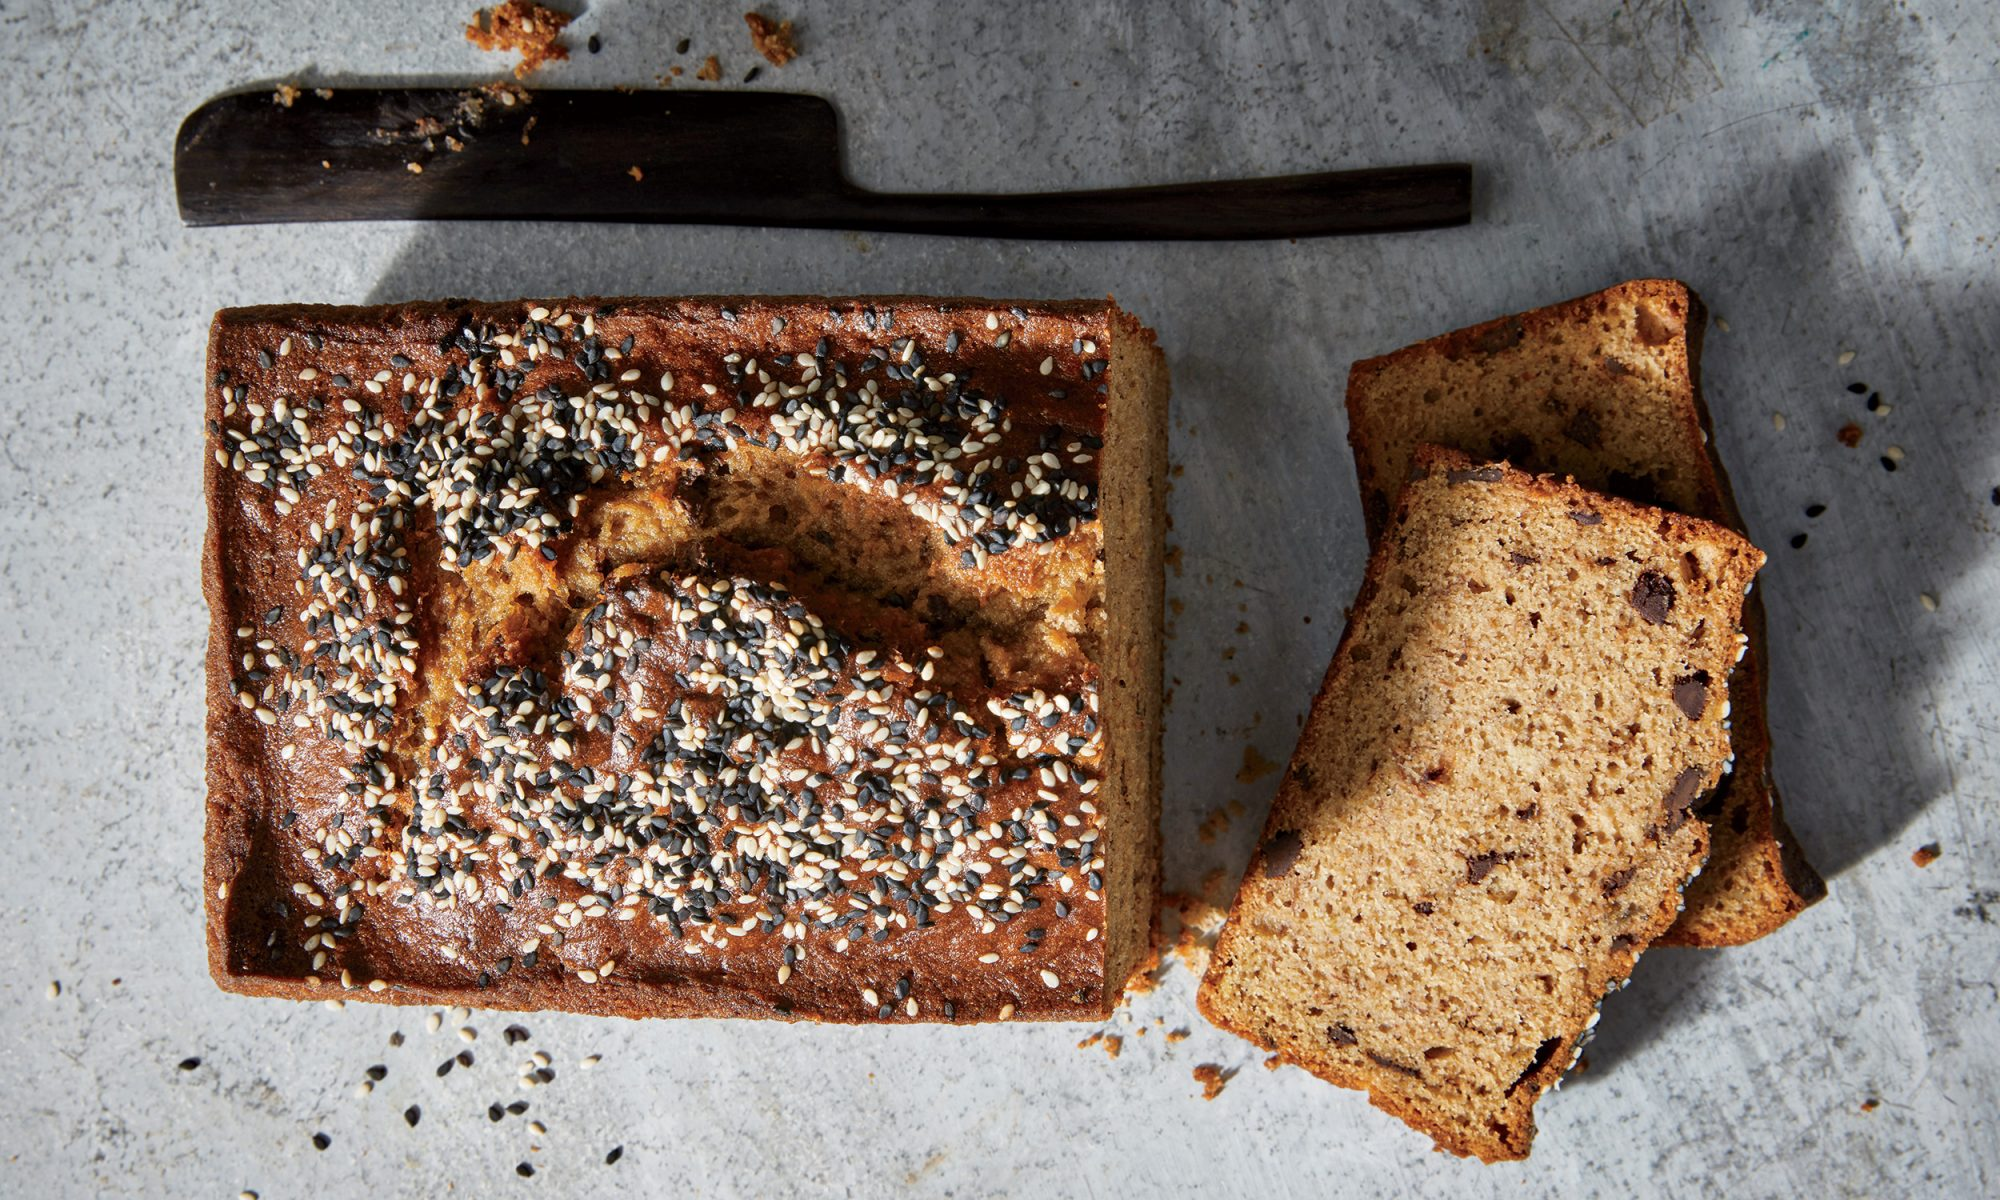 EC: Chocolate-Tahini Banana Bread Is 10/10 Would Bake Again